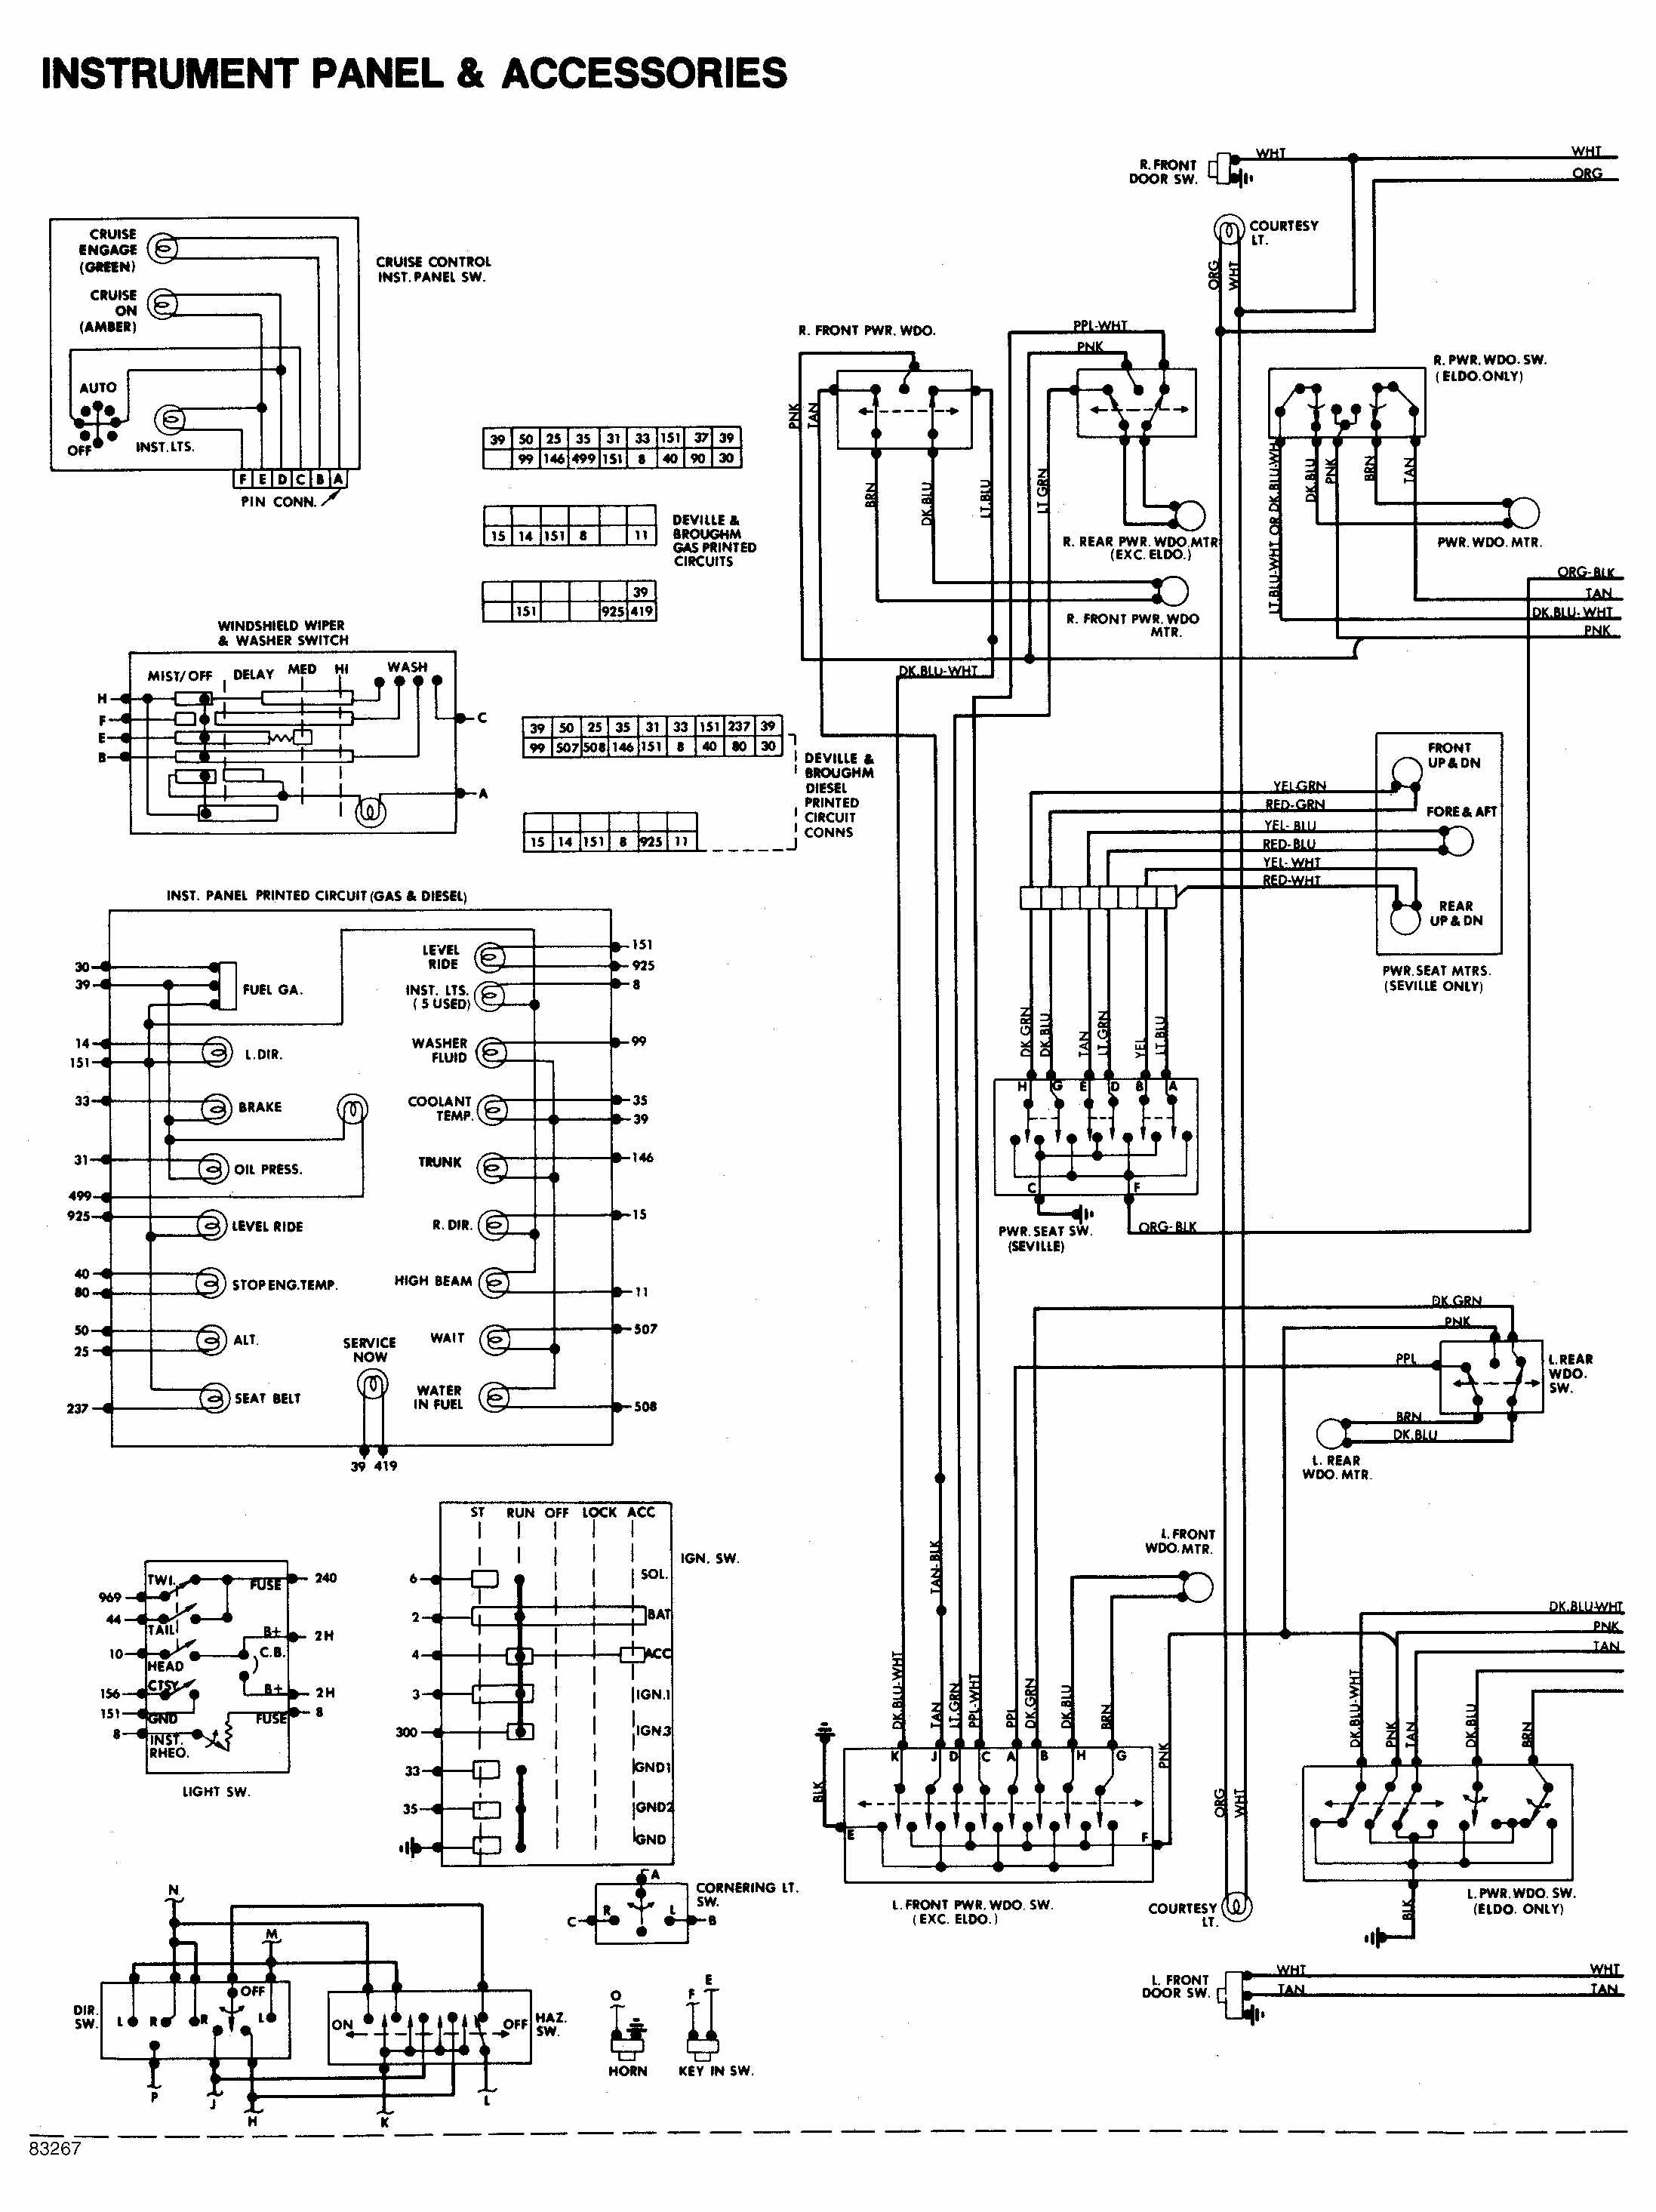 1984 Corvette Gauge Cluster Wiring Diagram Schematic ... on